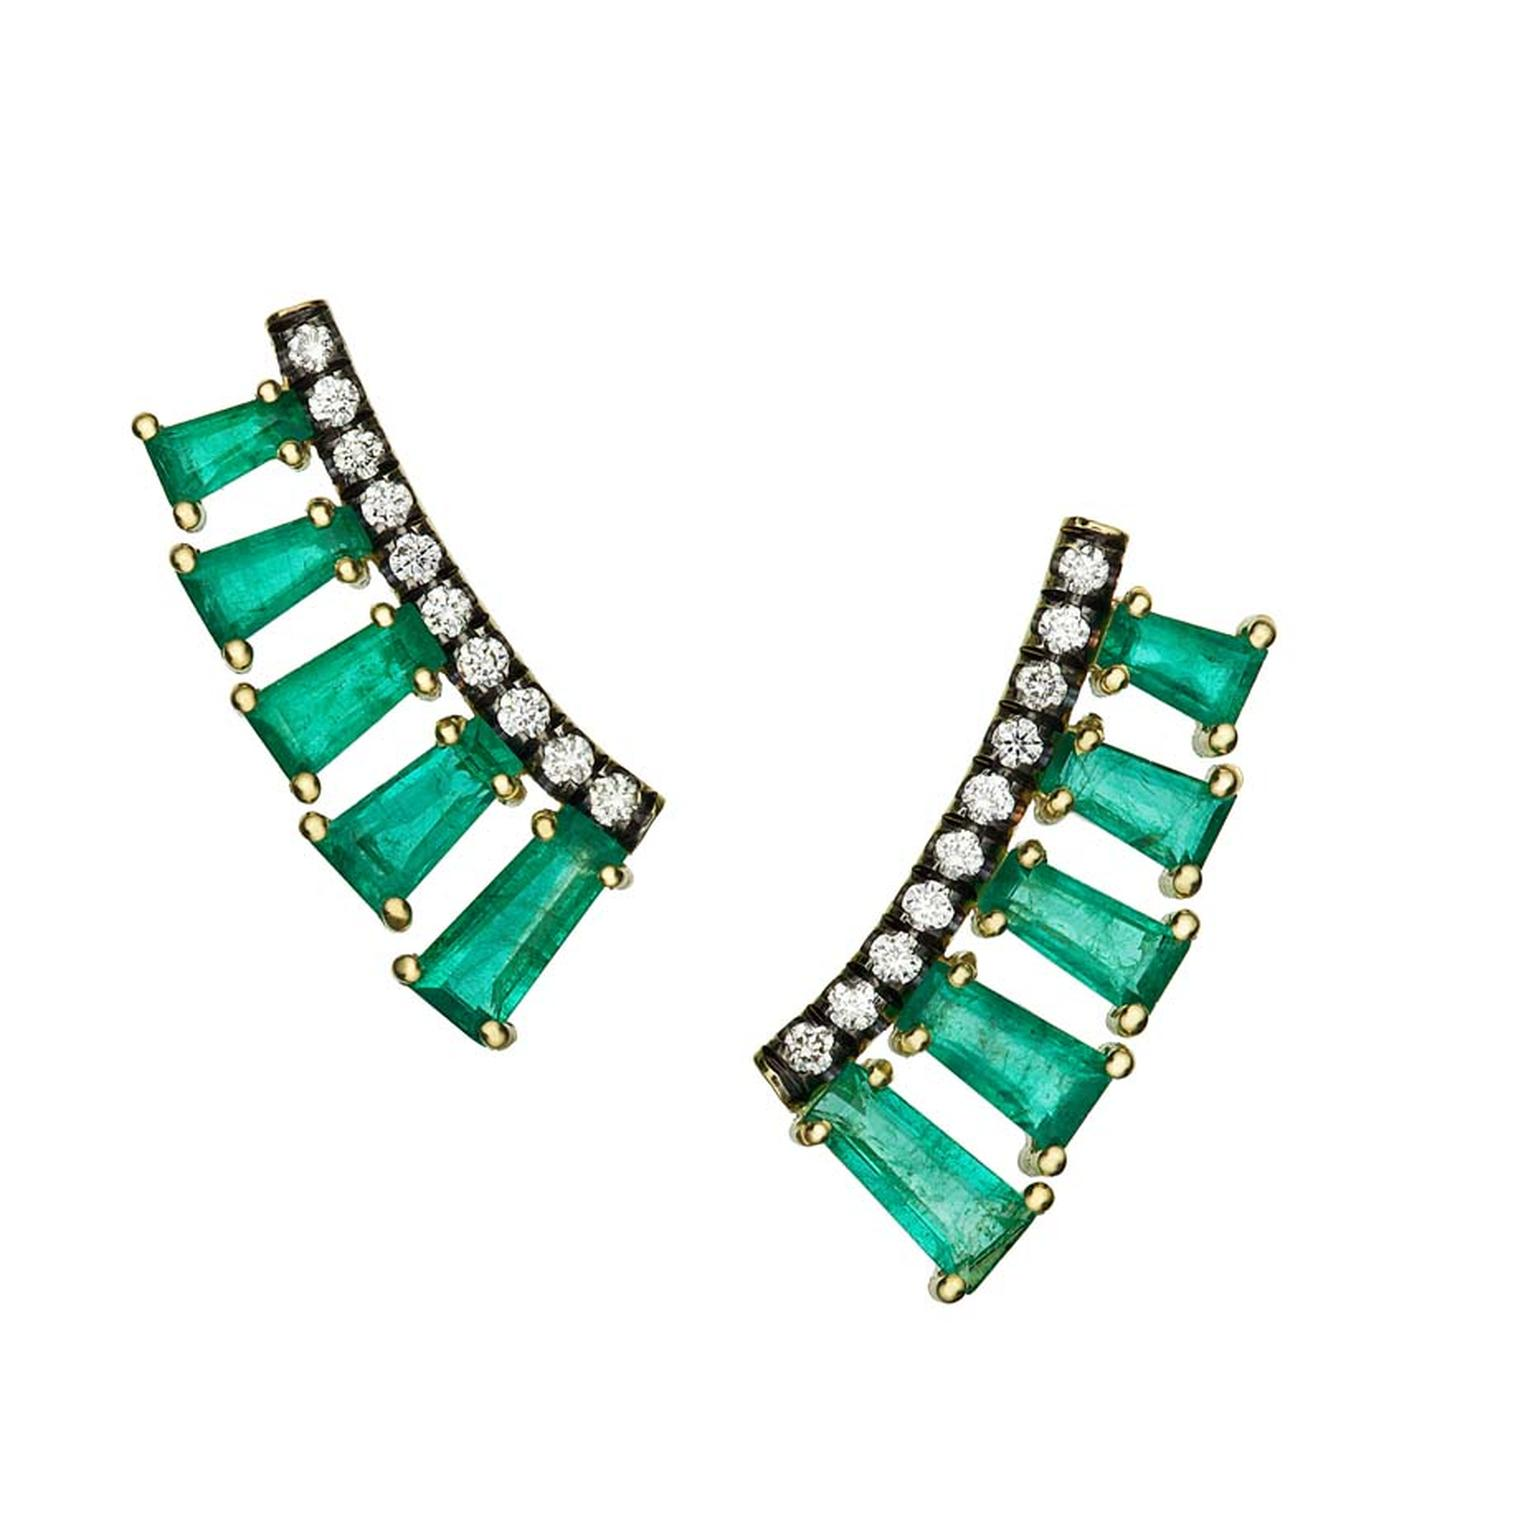 Jemma Wynne Covet ear cuffs with baguette-cut emeralds and brilliant-cut diamonds.